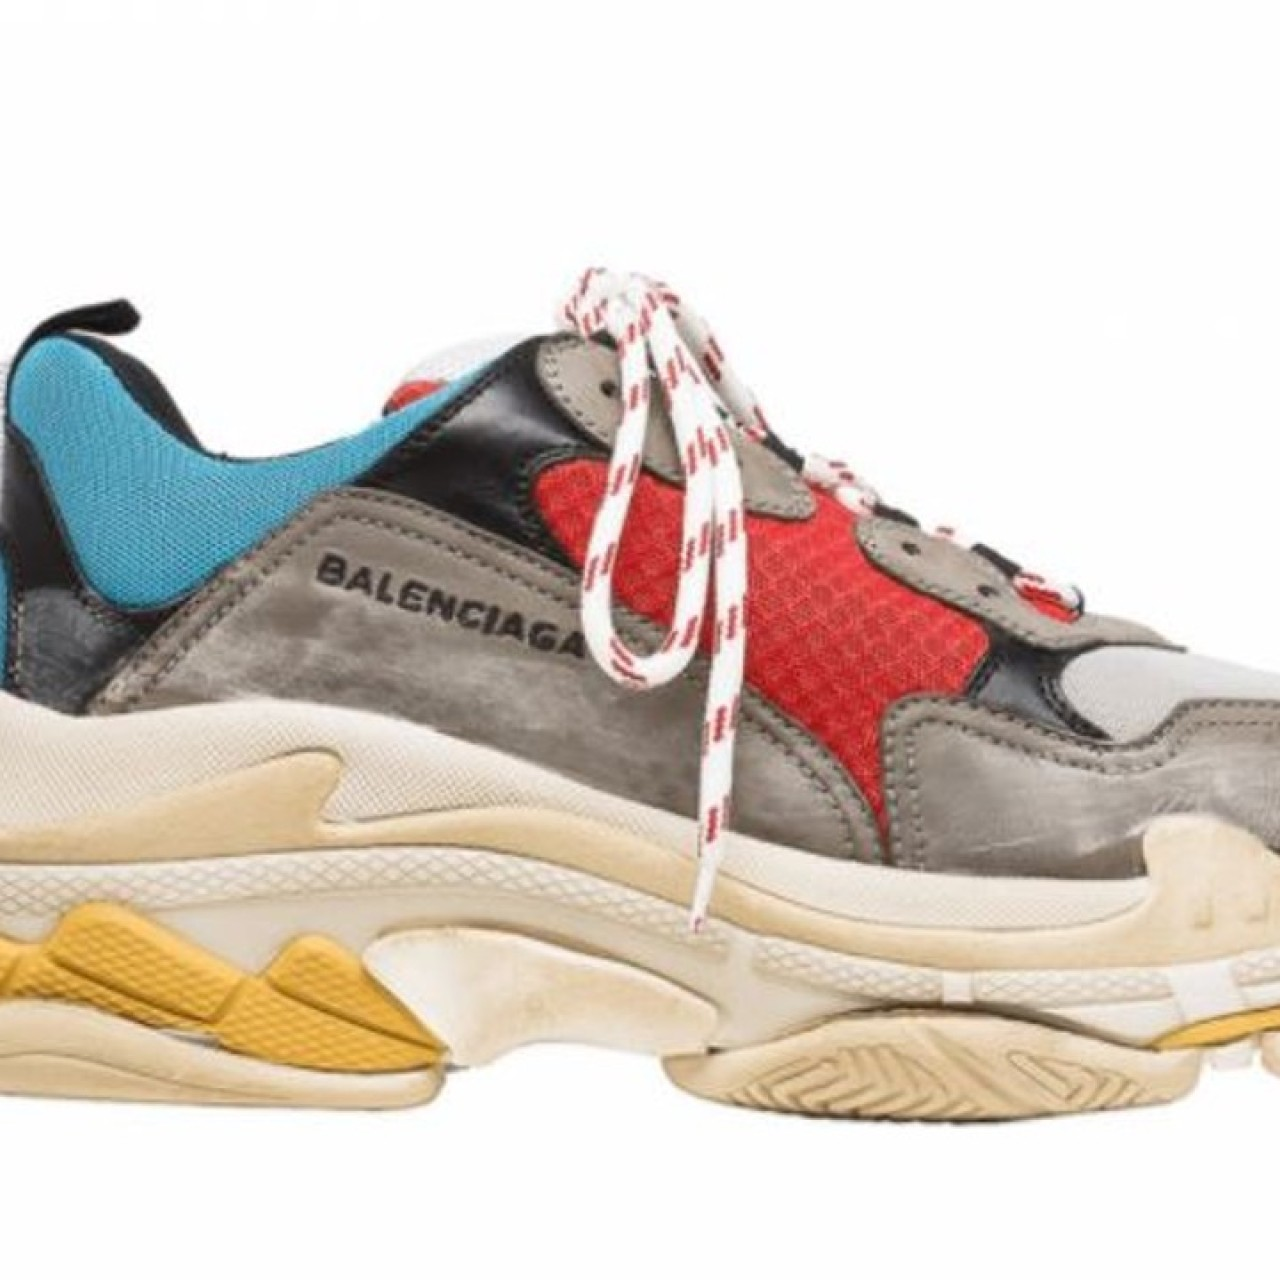 c985b2ed0ddd3 Chinese consumers divided over Balenciaga's 'Made in China ...